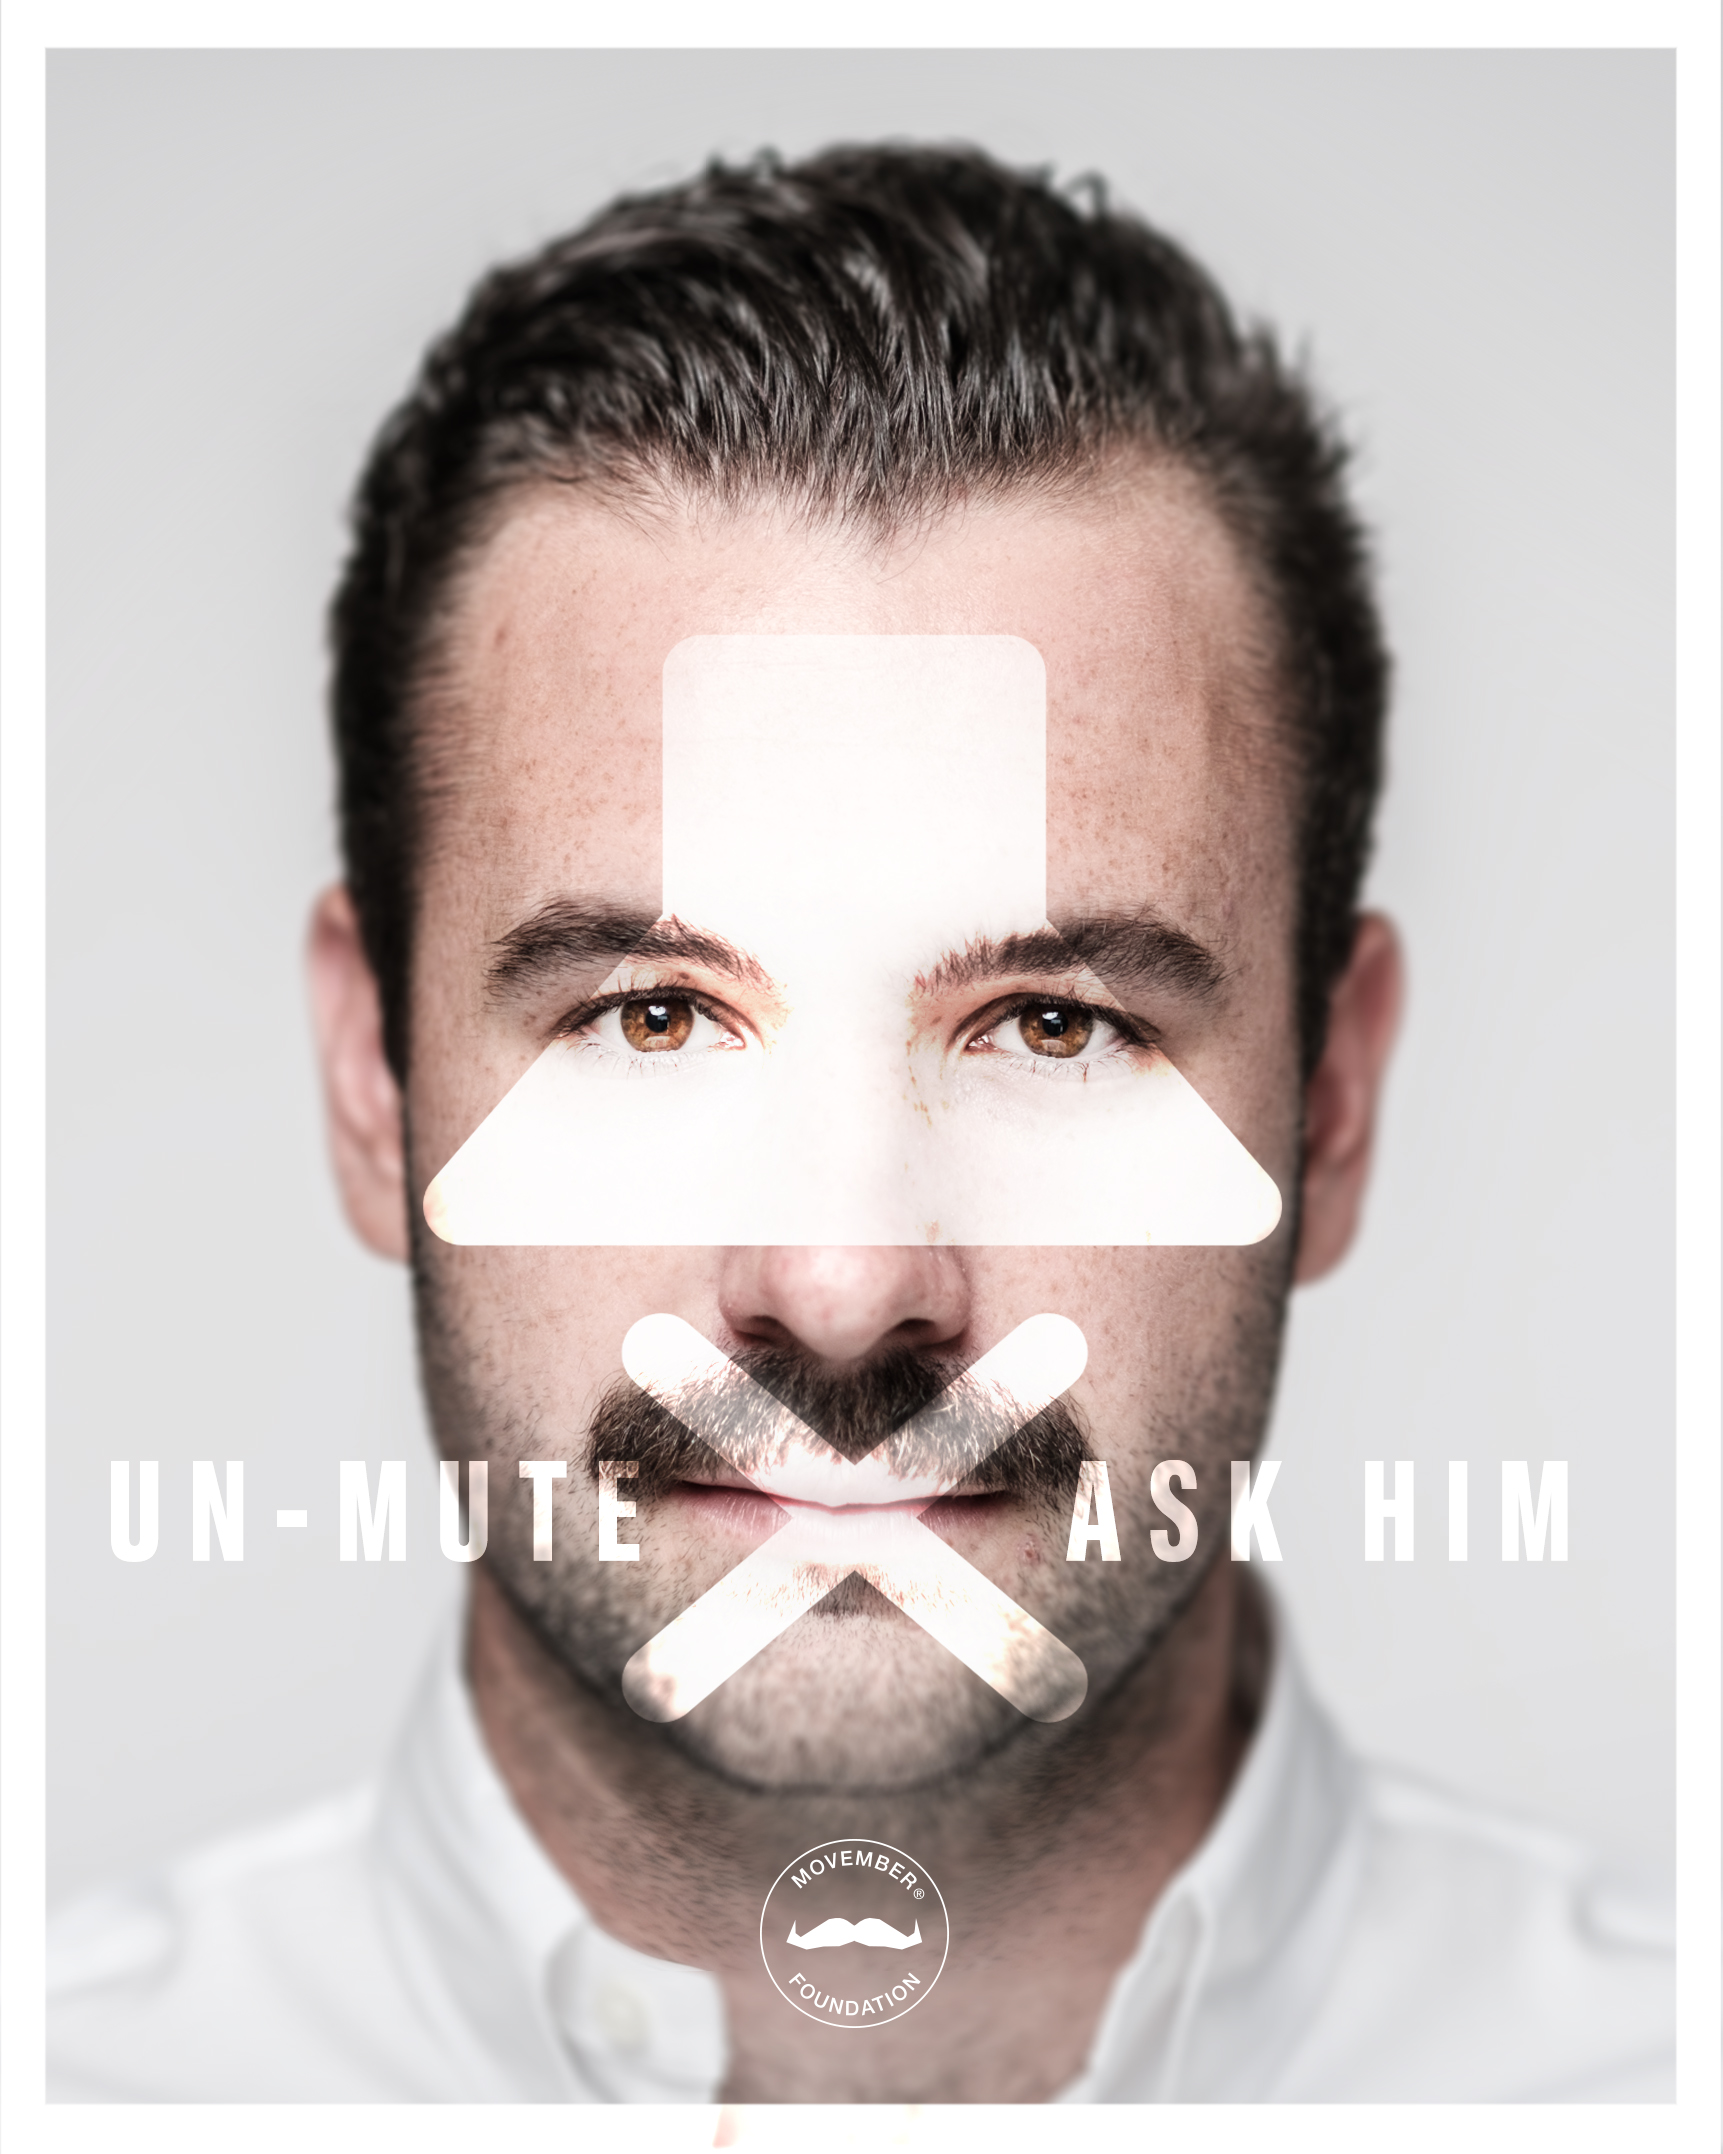 Campaign pic from Movember Foundation's Unmute - Ask Him campaign (Movember Foundation/PA)